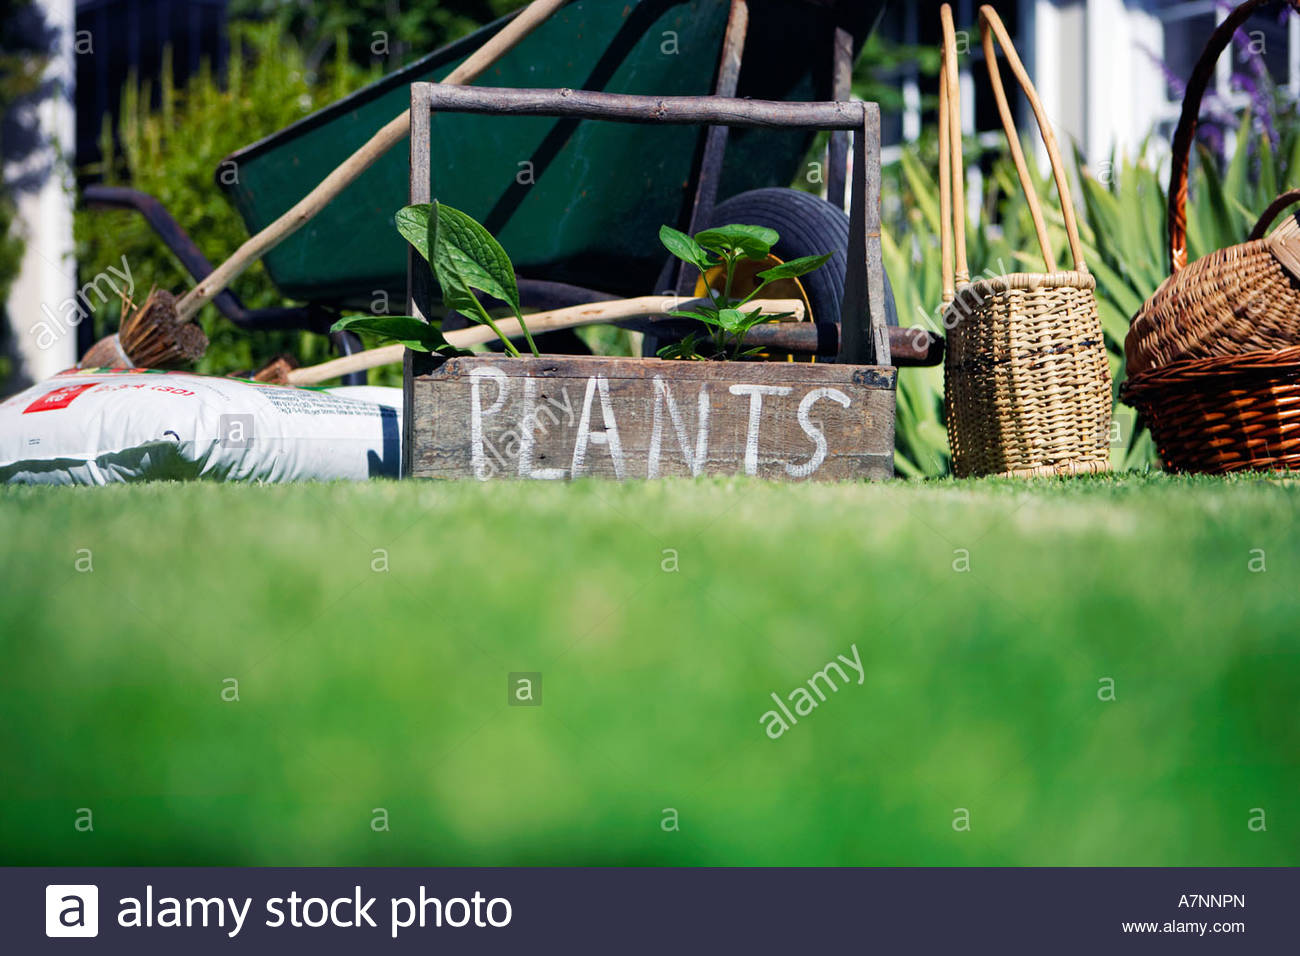 Box labeled plants in garden beside wheelbarrow compost and wicker baskets surface level - Stock Image